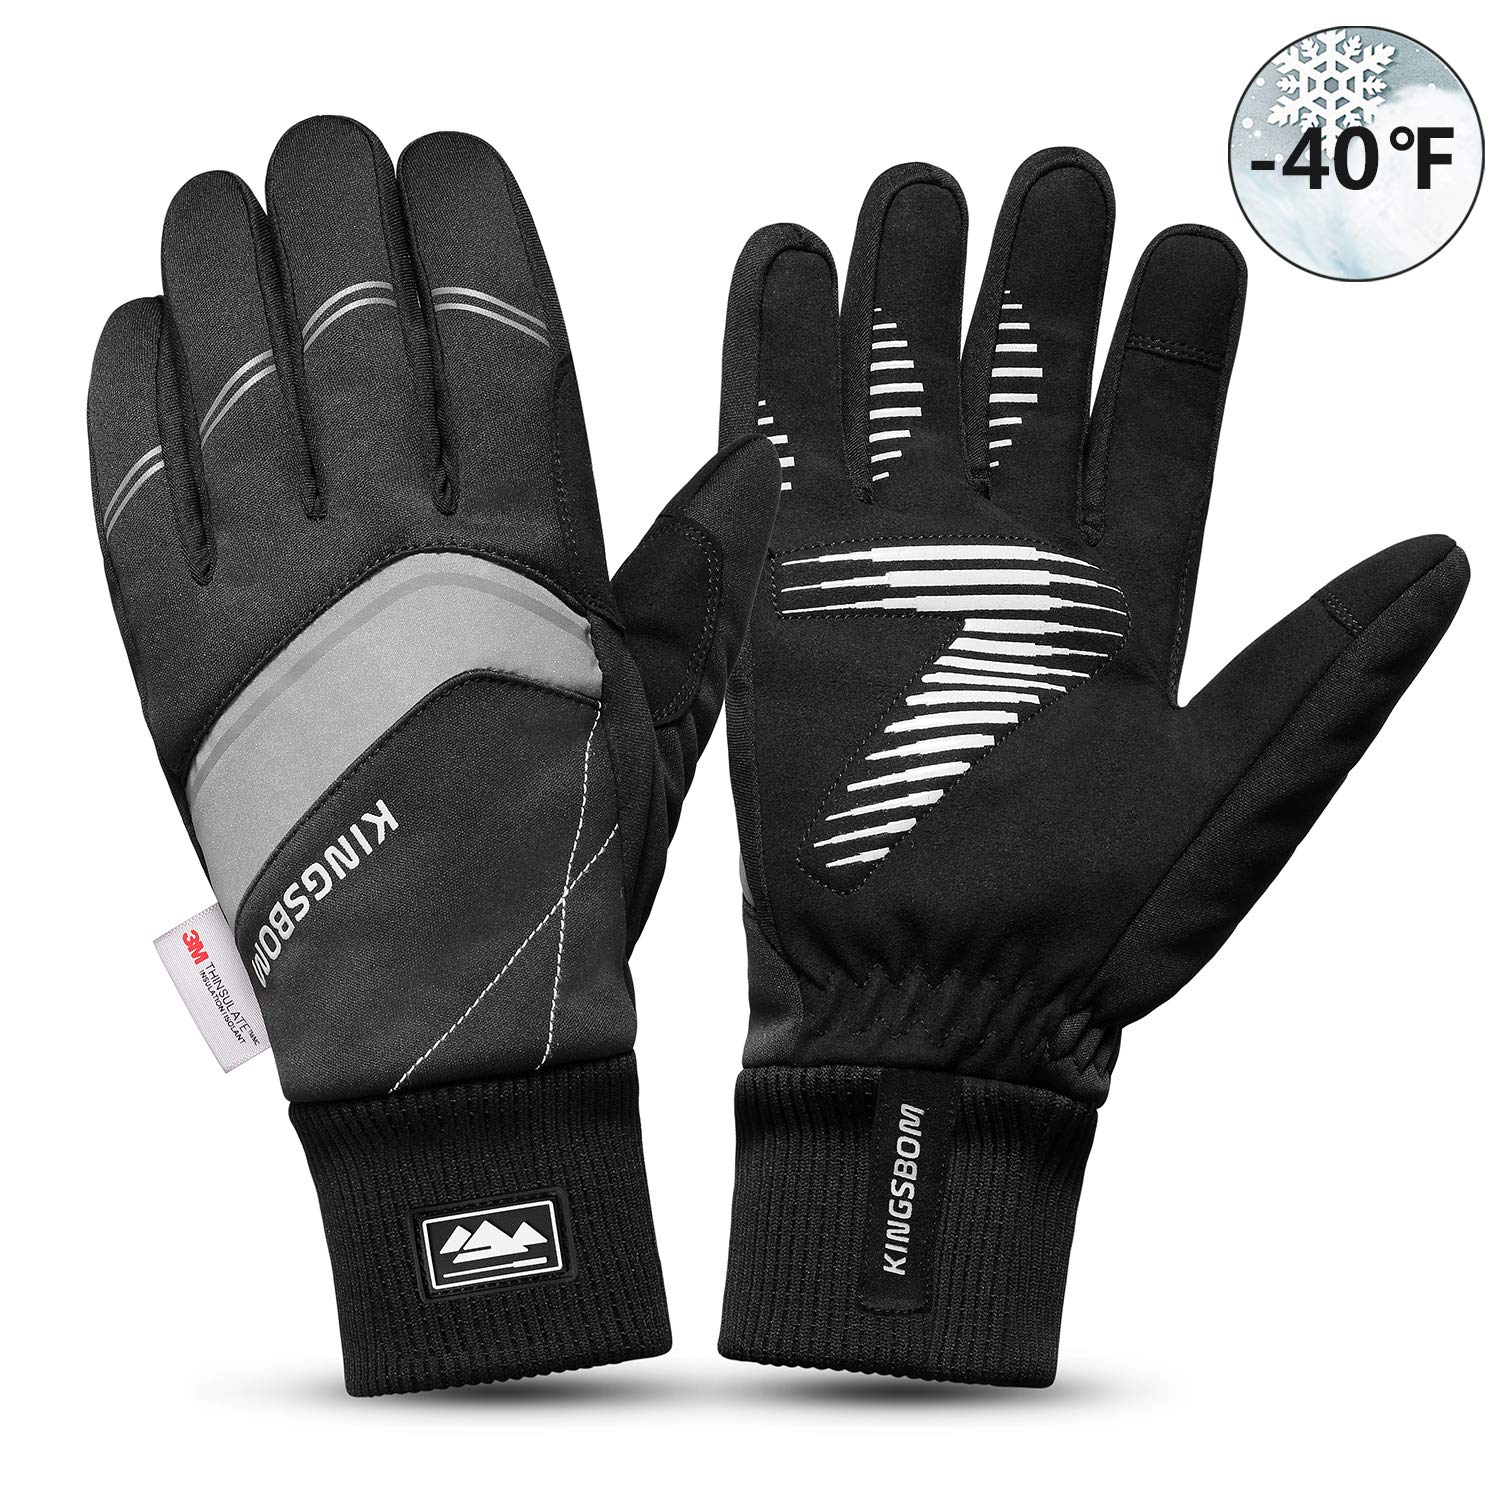 Waterproof Touch Screen Thermal Driving Gloves Bike Motorcycle Cycling Riding